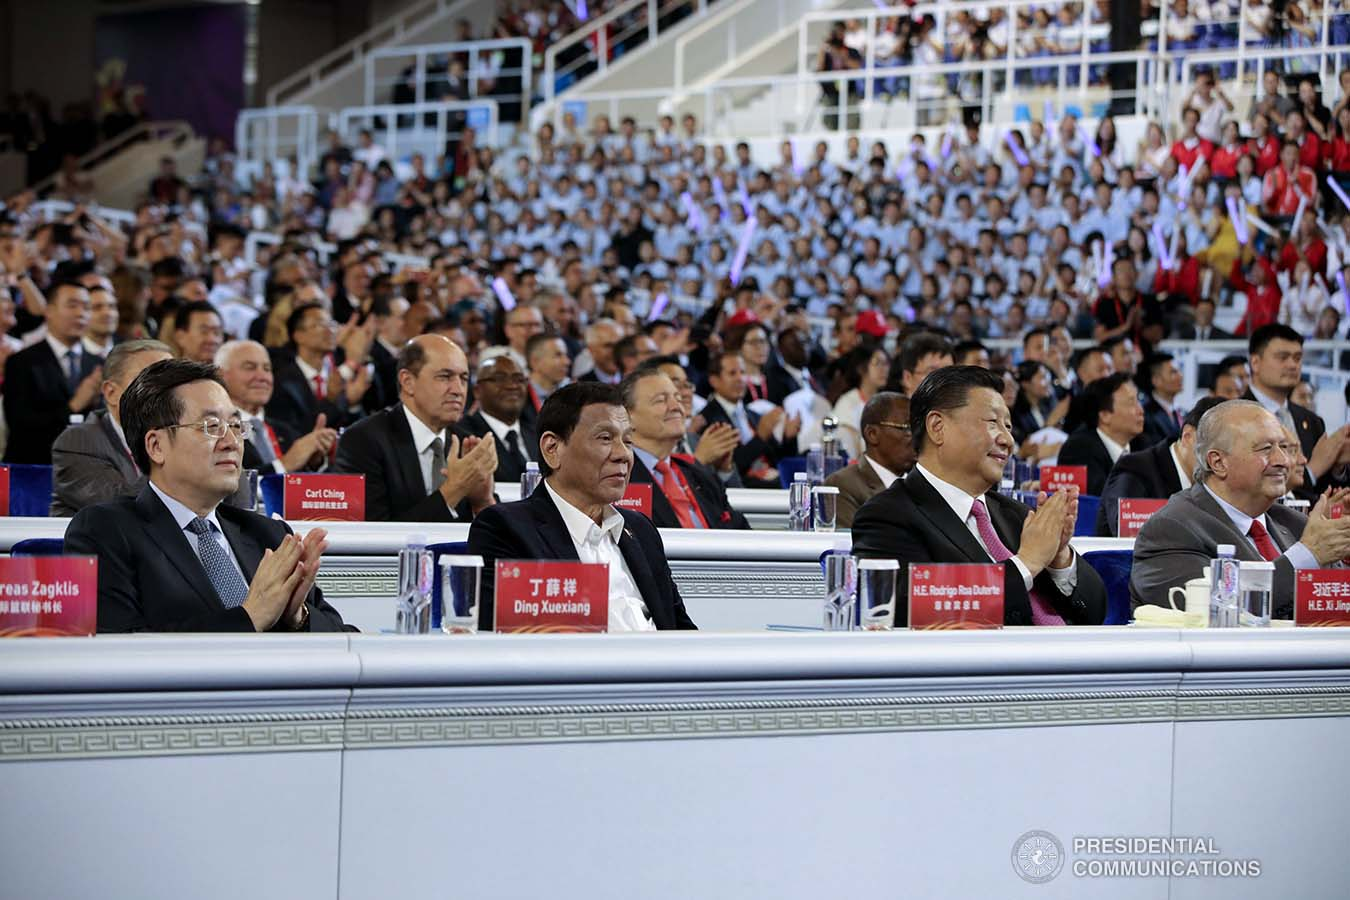 President Rodrigo Roa Duterte witnesses the program proper during the opening ceremony of the FIBA Basketball World Cup 2019 at the National Aquatics Center in Beijing, People's Republic of China on August 30, 2019. With the President is People's Republic of China President Xi Jinping. ROBINSON NIÑAL JR./PRESIDENTIAL PHOTO